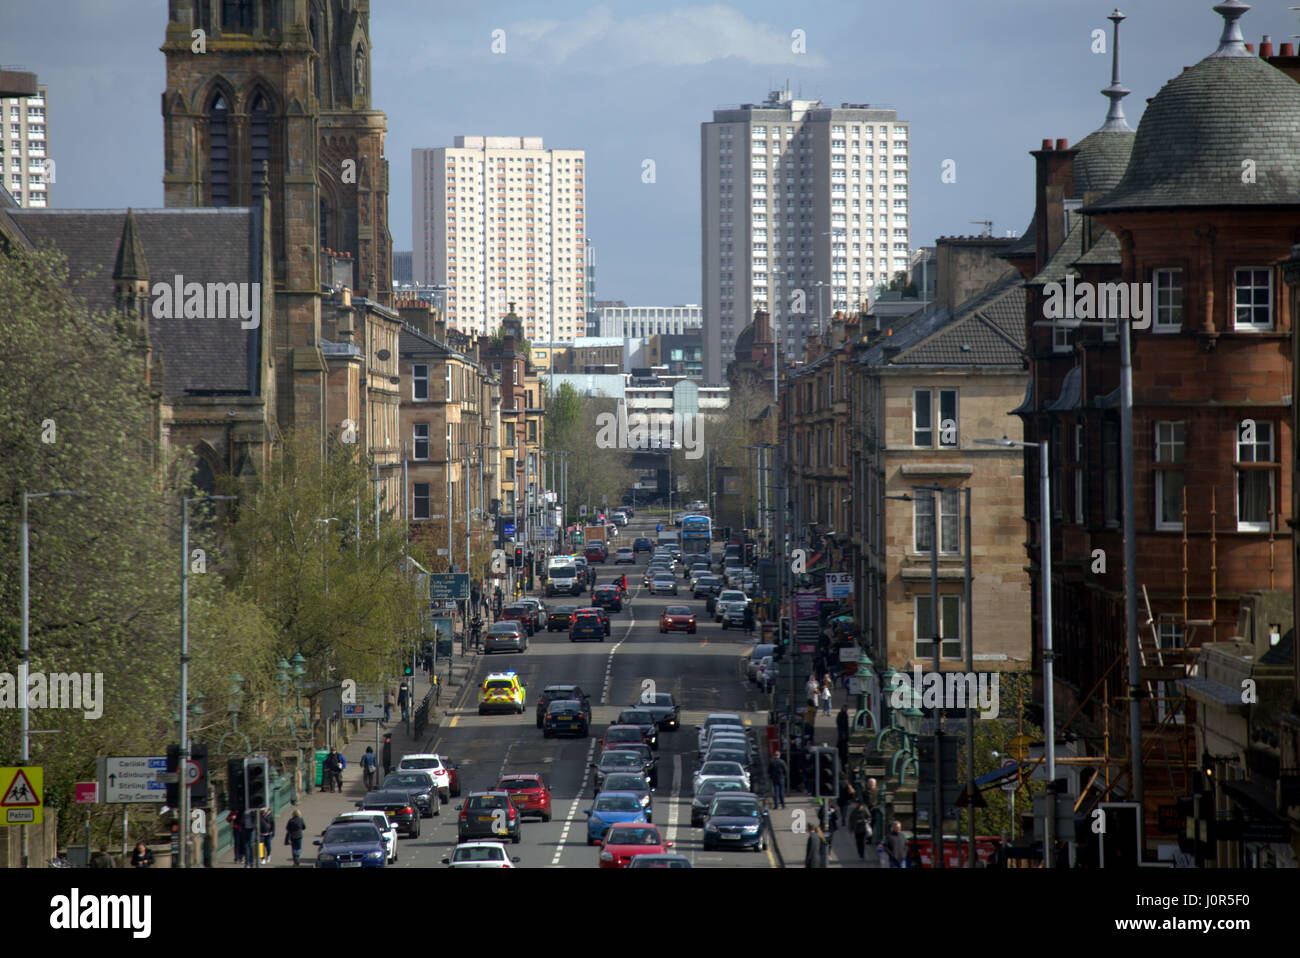 Great Western Road at Kelvin Bridge Glasgow Scotland street scene high viewpoint - Stock Image